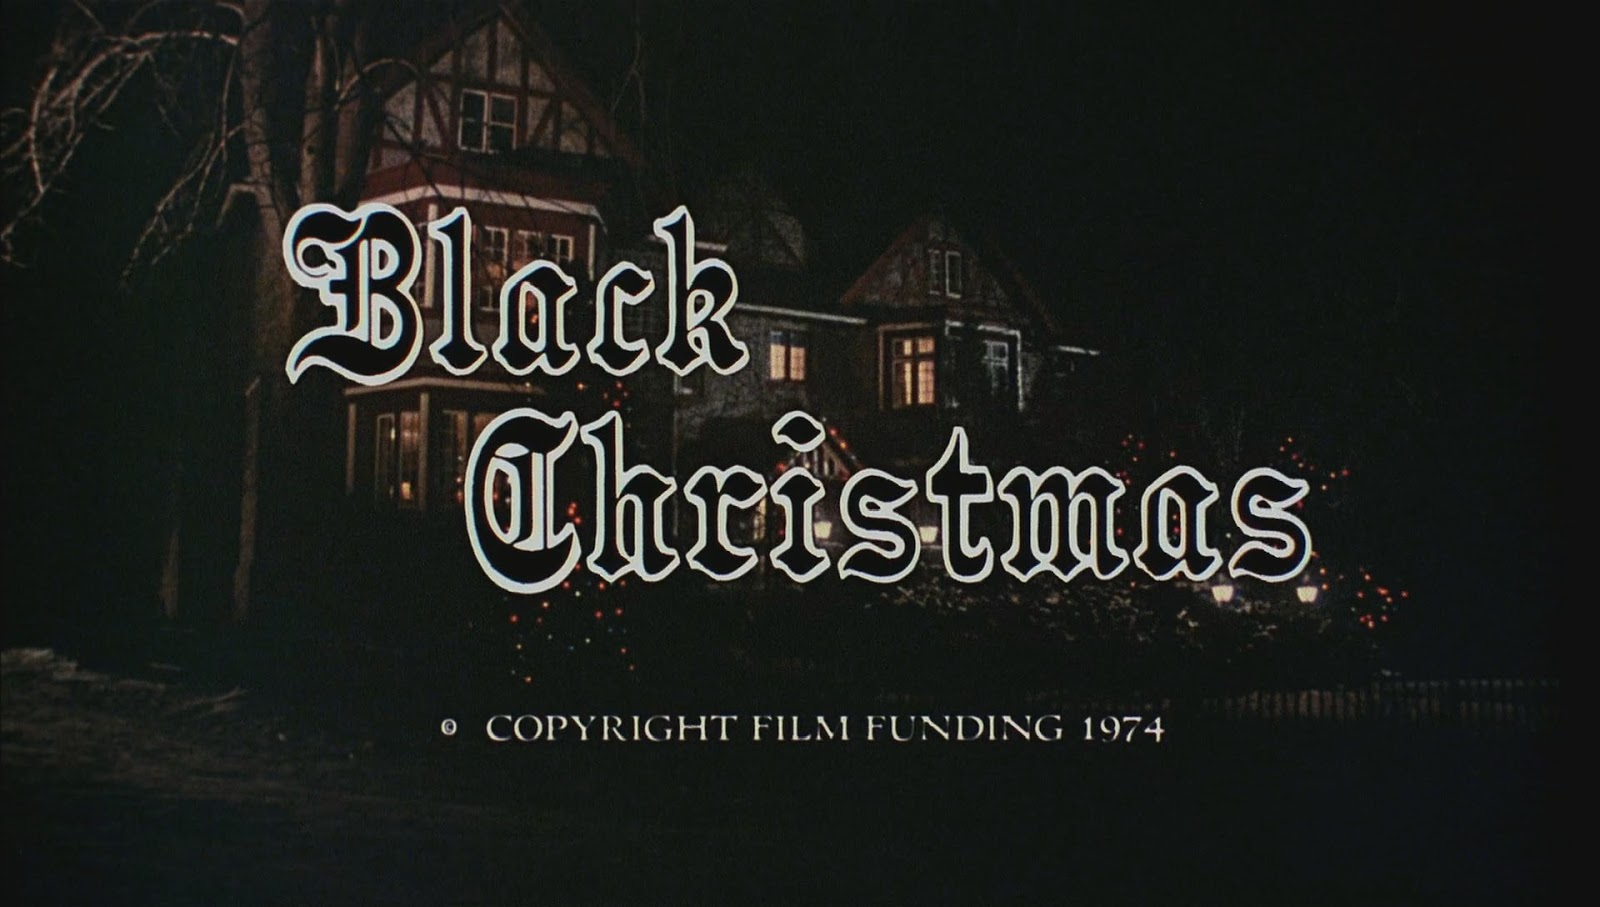 christmas break is coming up at a university and a certain sorority house has an unwelcome visitor the young women are busy with their christmas parties - Black Christmas 1974